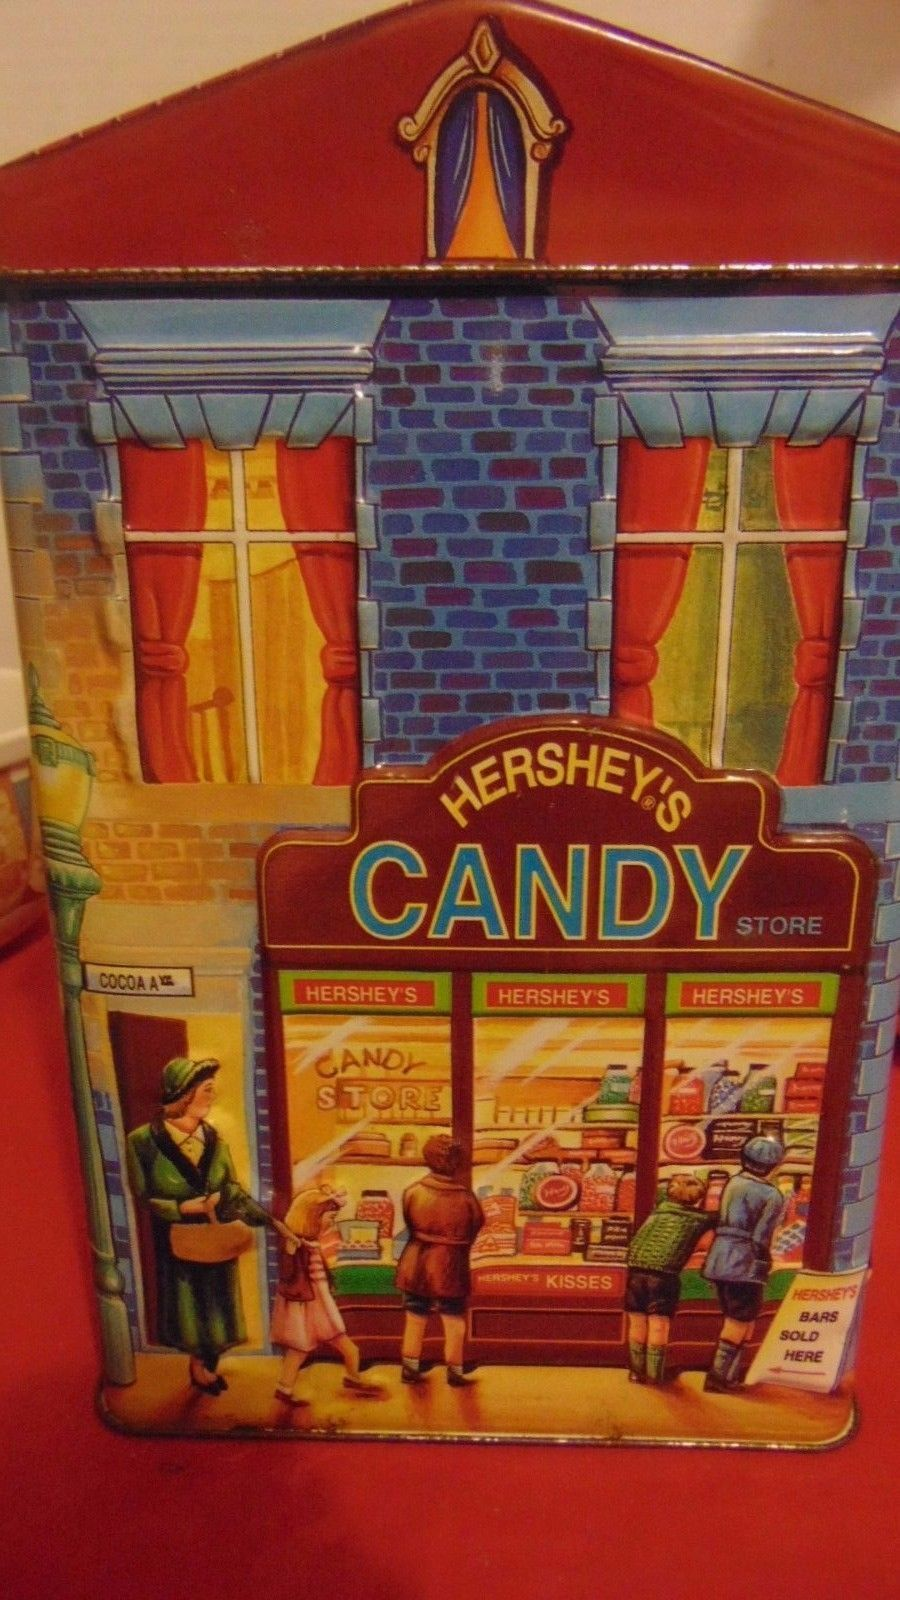 Hersheys Tins-Soup/Cereal Bowls-3 Each-Houston Harvest Gift Candy Store-Candy image 7